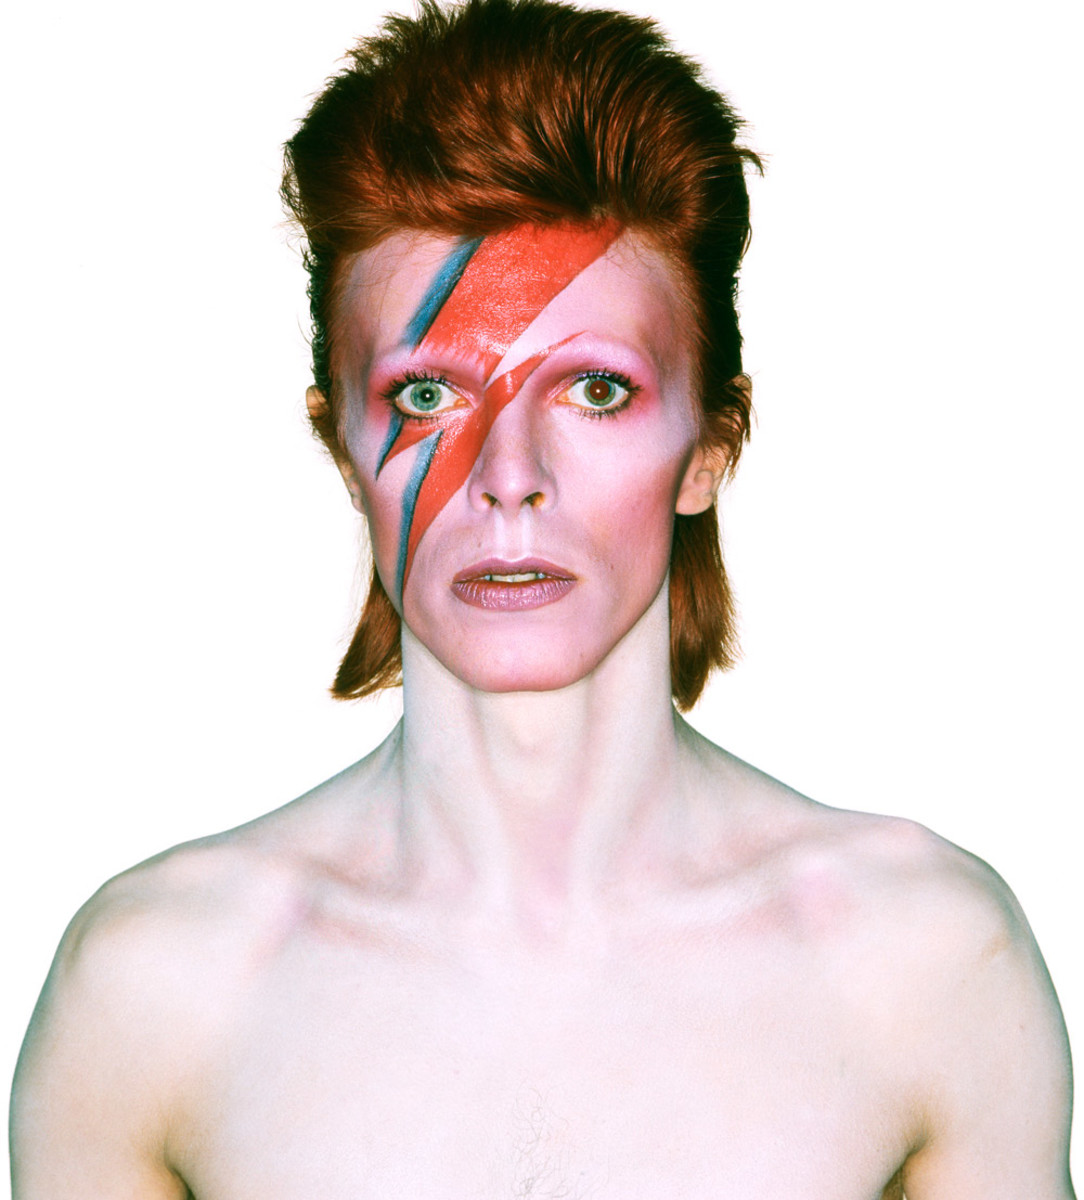 David Bowie's View Outside the Box